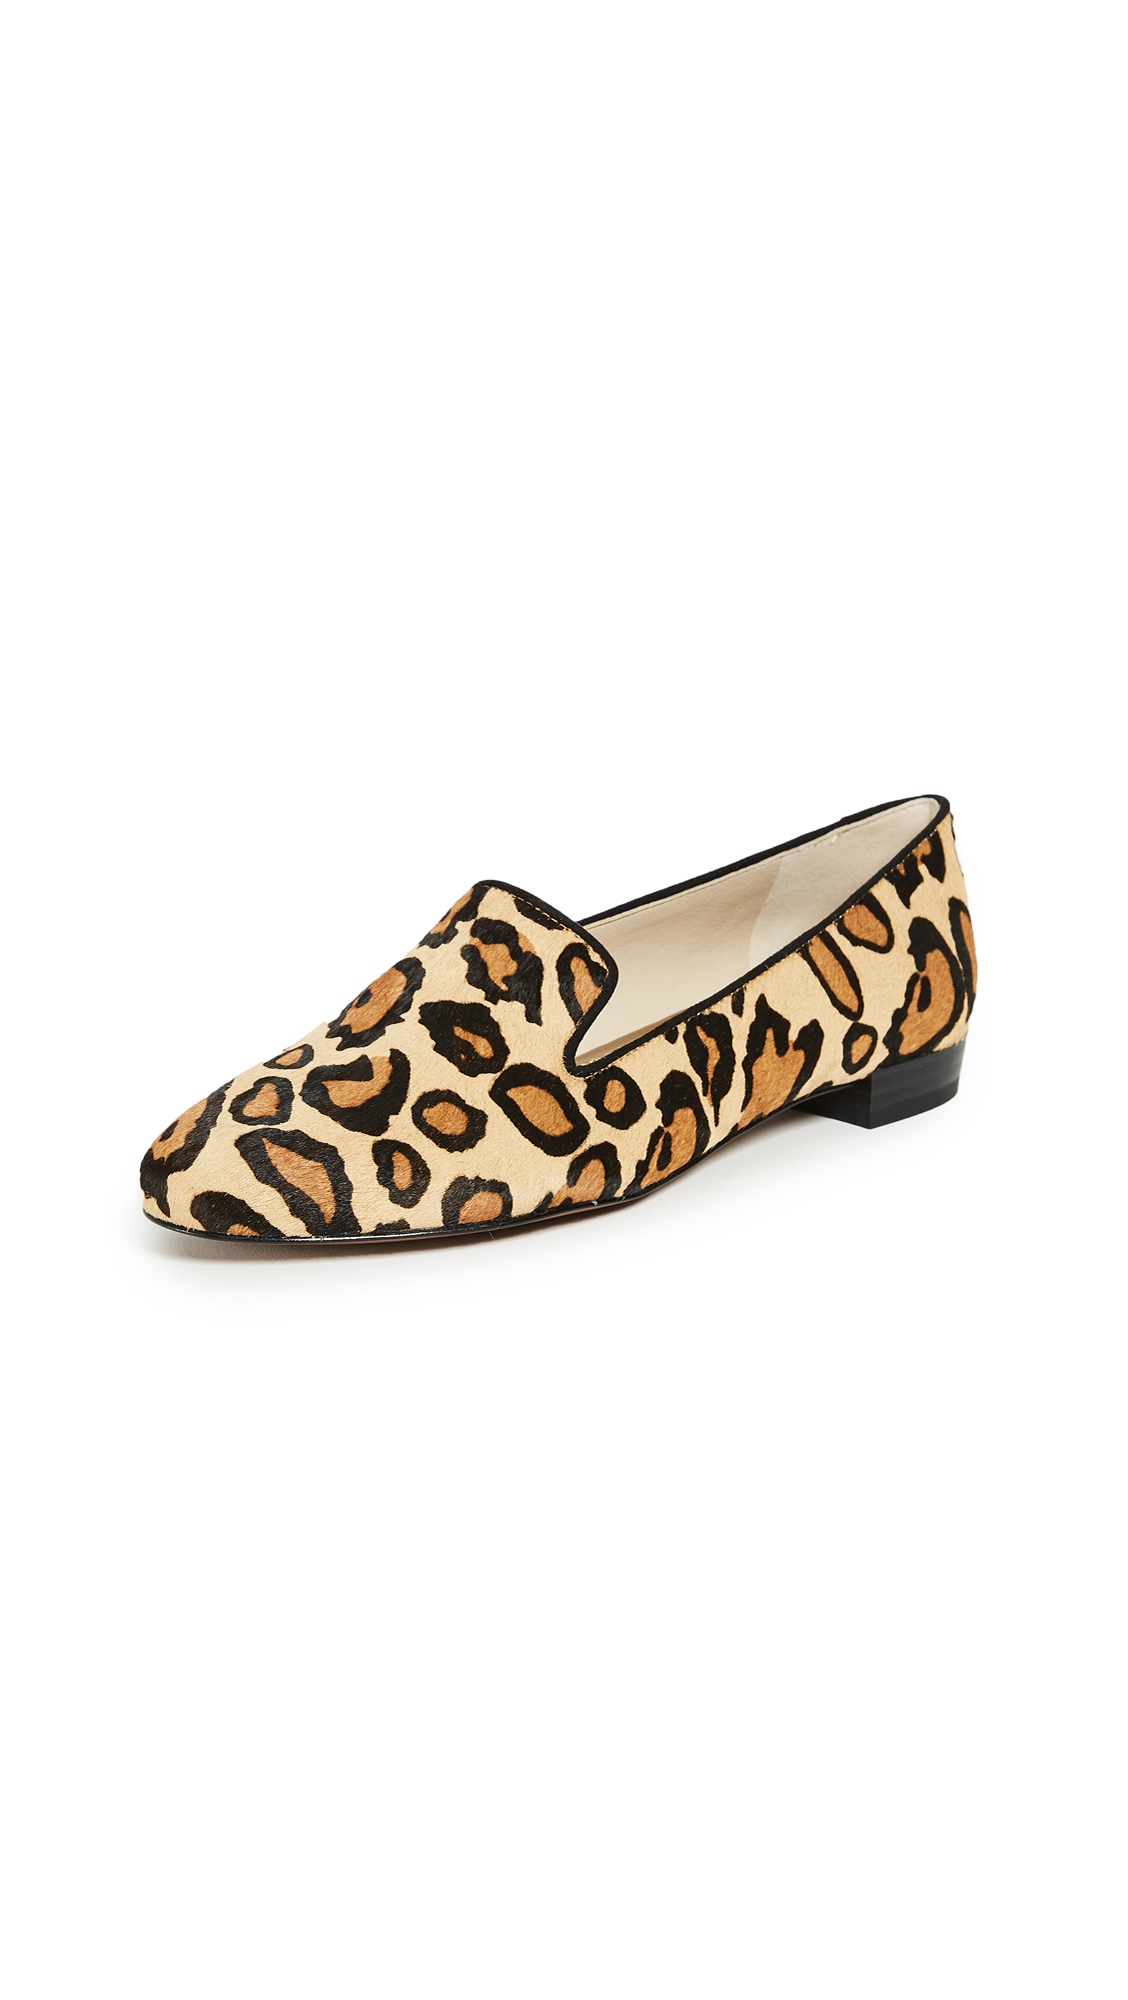 Sam Edelman Jordy Loafers - New Nude Leopard